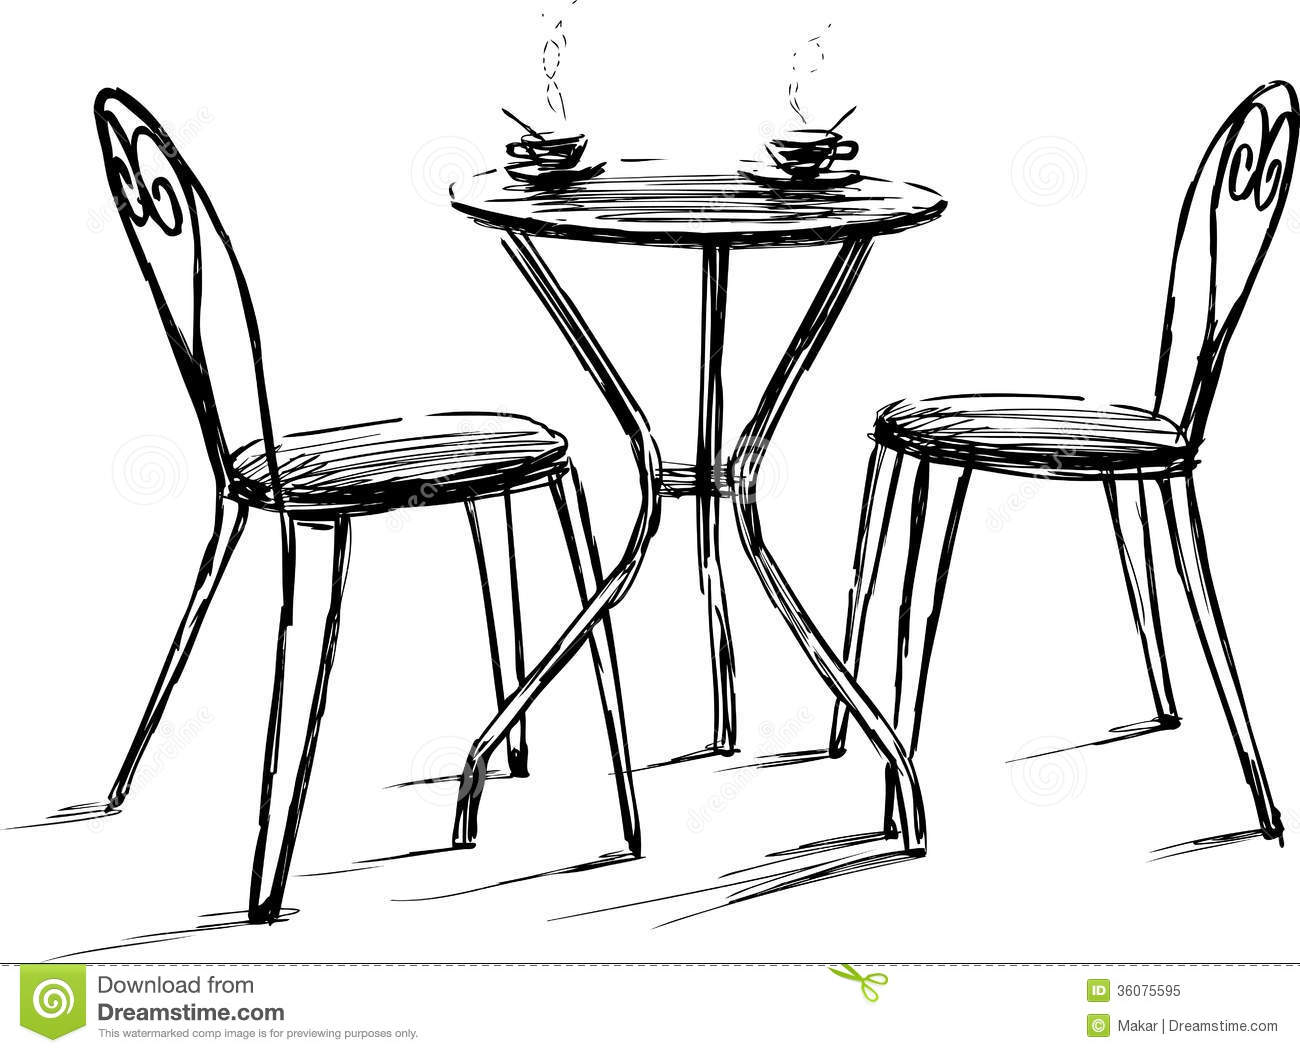 Furniture clipart beautifull Cafe  Cafe Barstools And